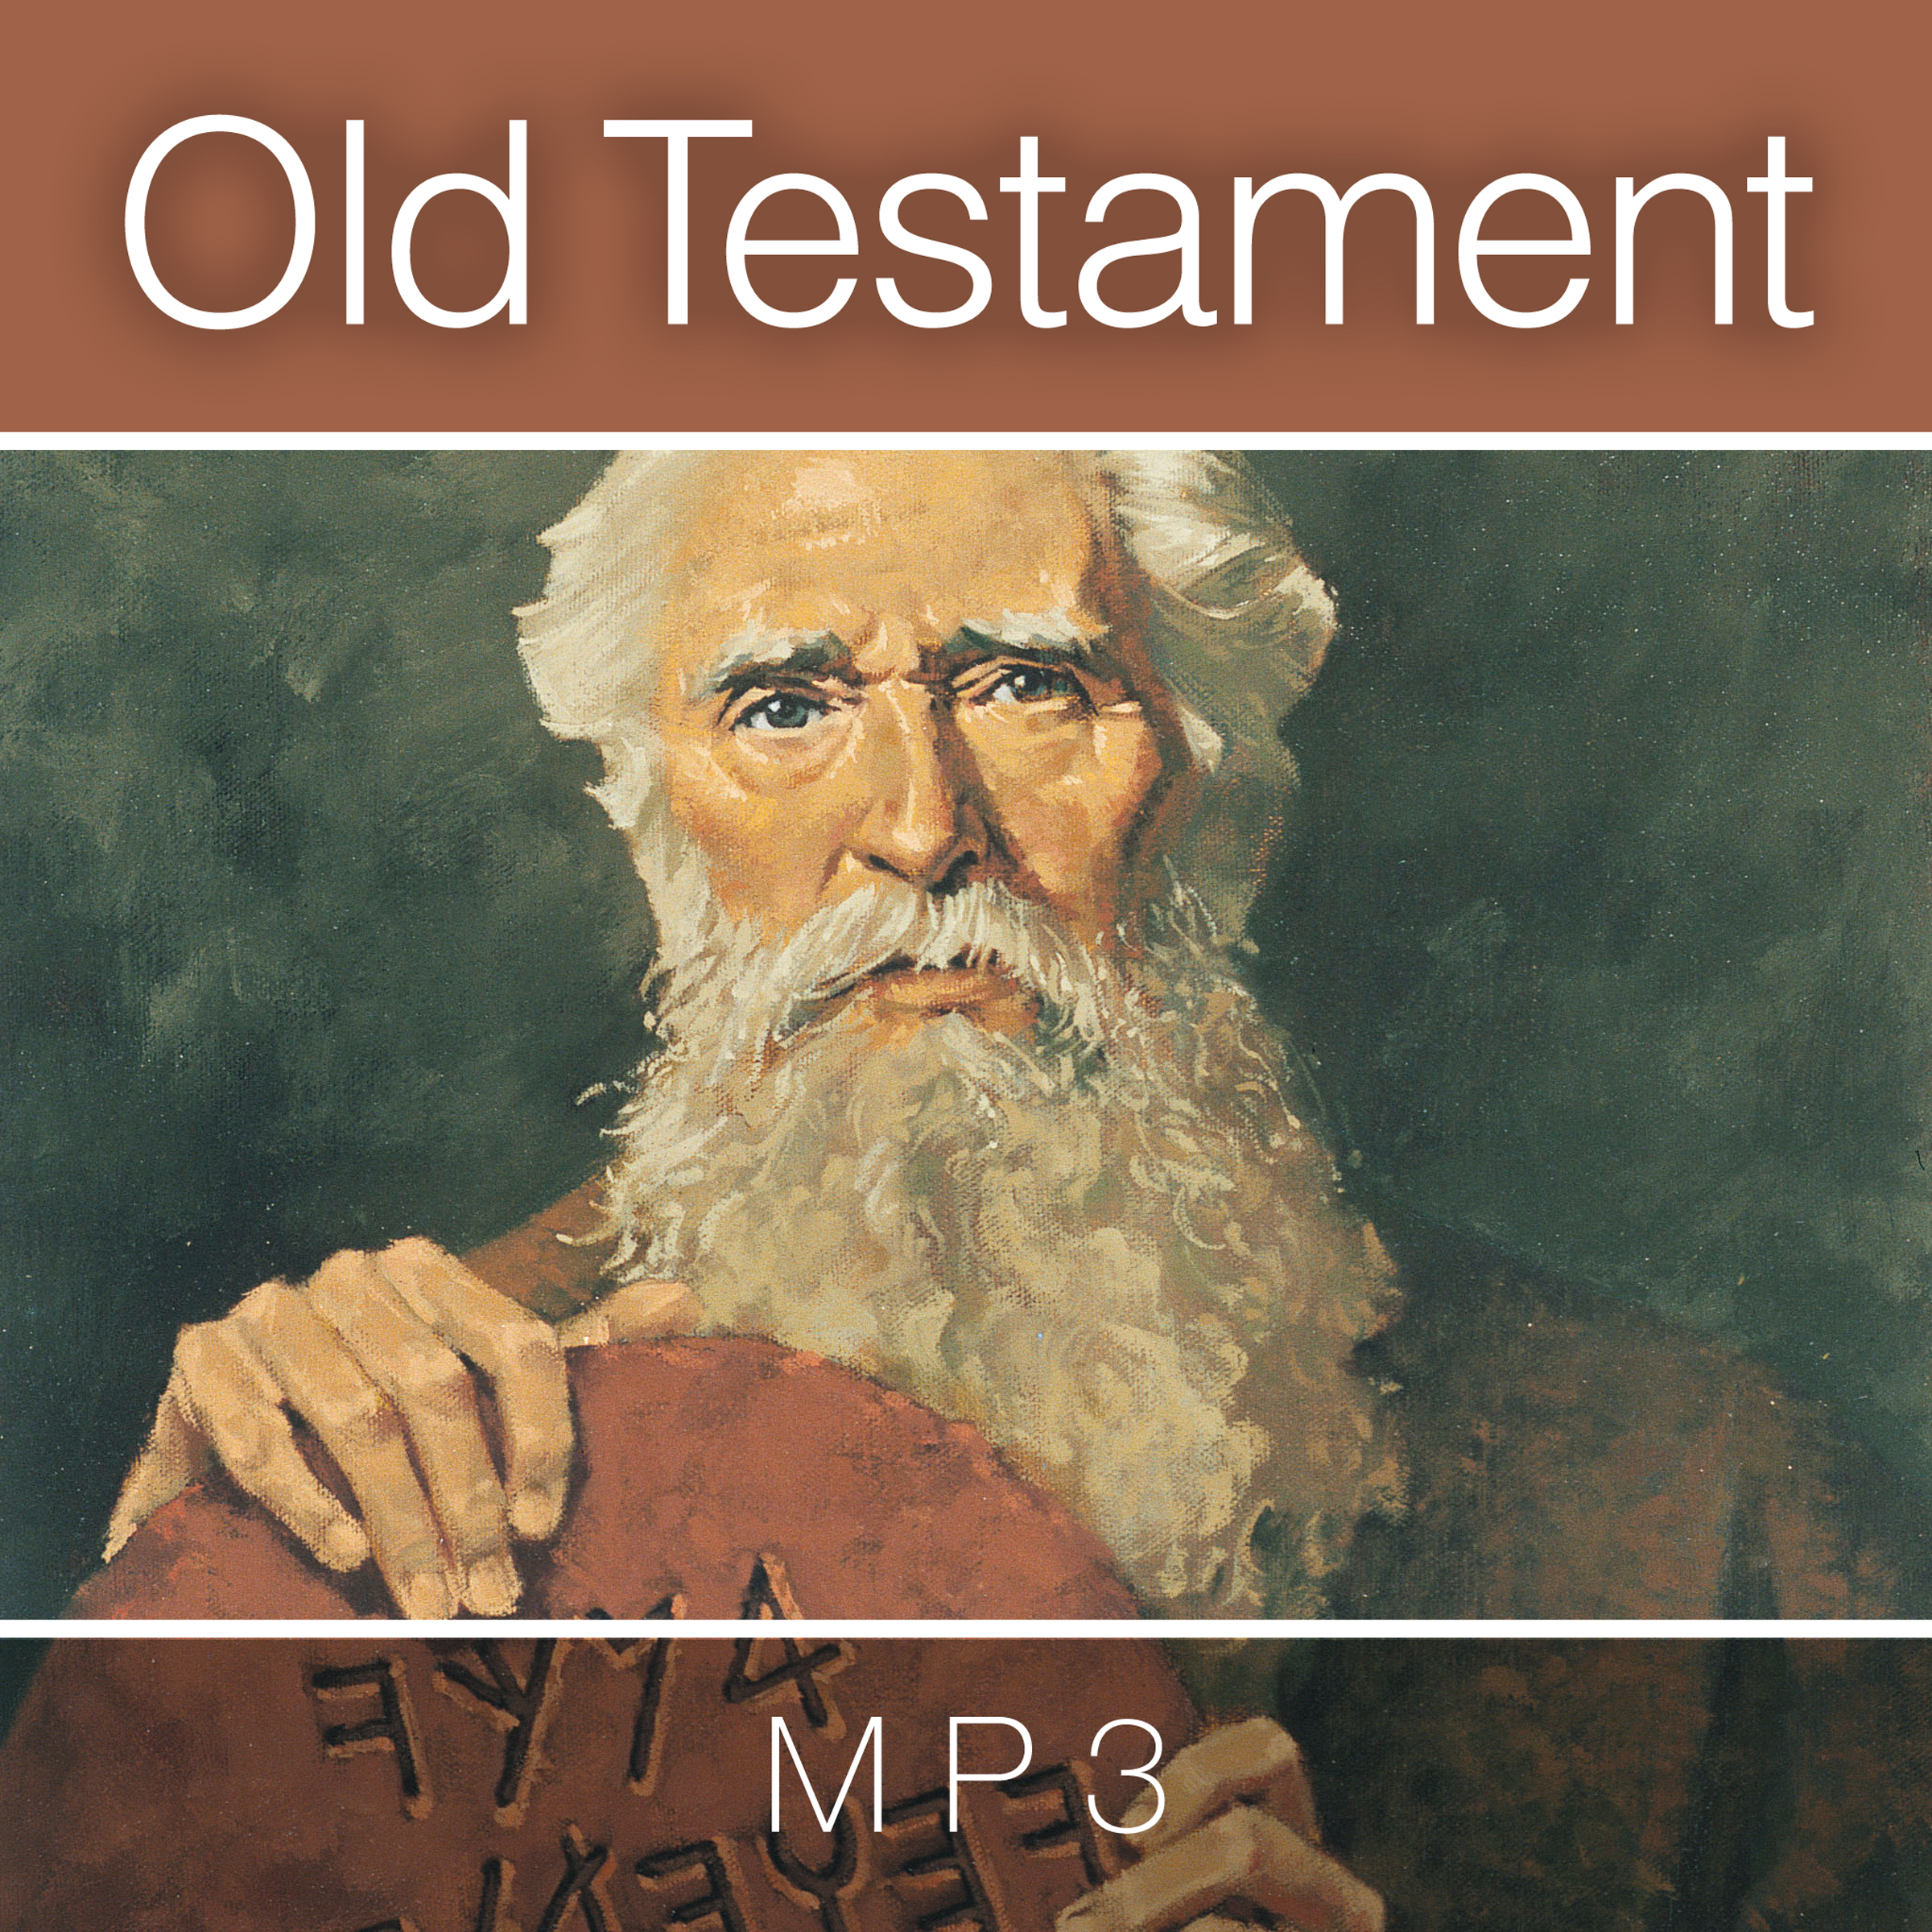 The Old Testament | MP3 | ENGLISH | Listen via Stitcher for Podcasts